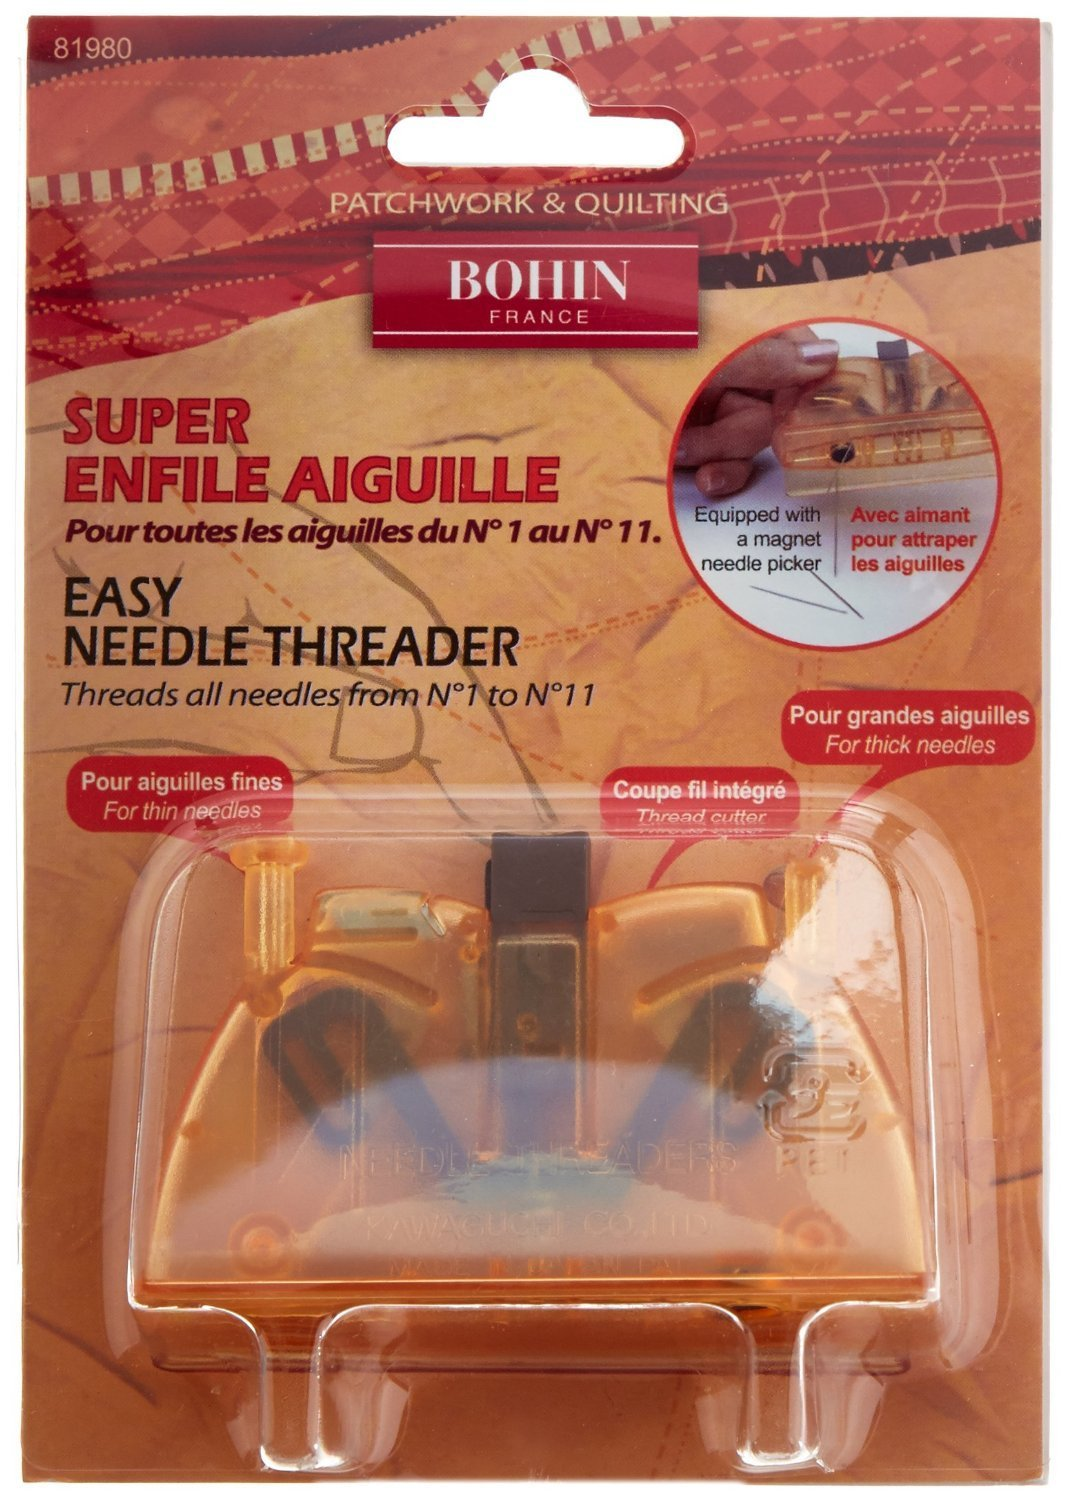 Needle Threader - Bohin